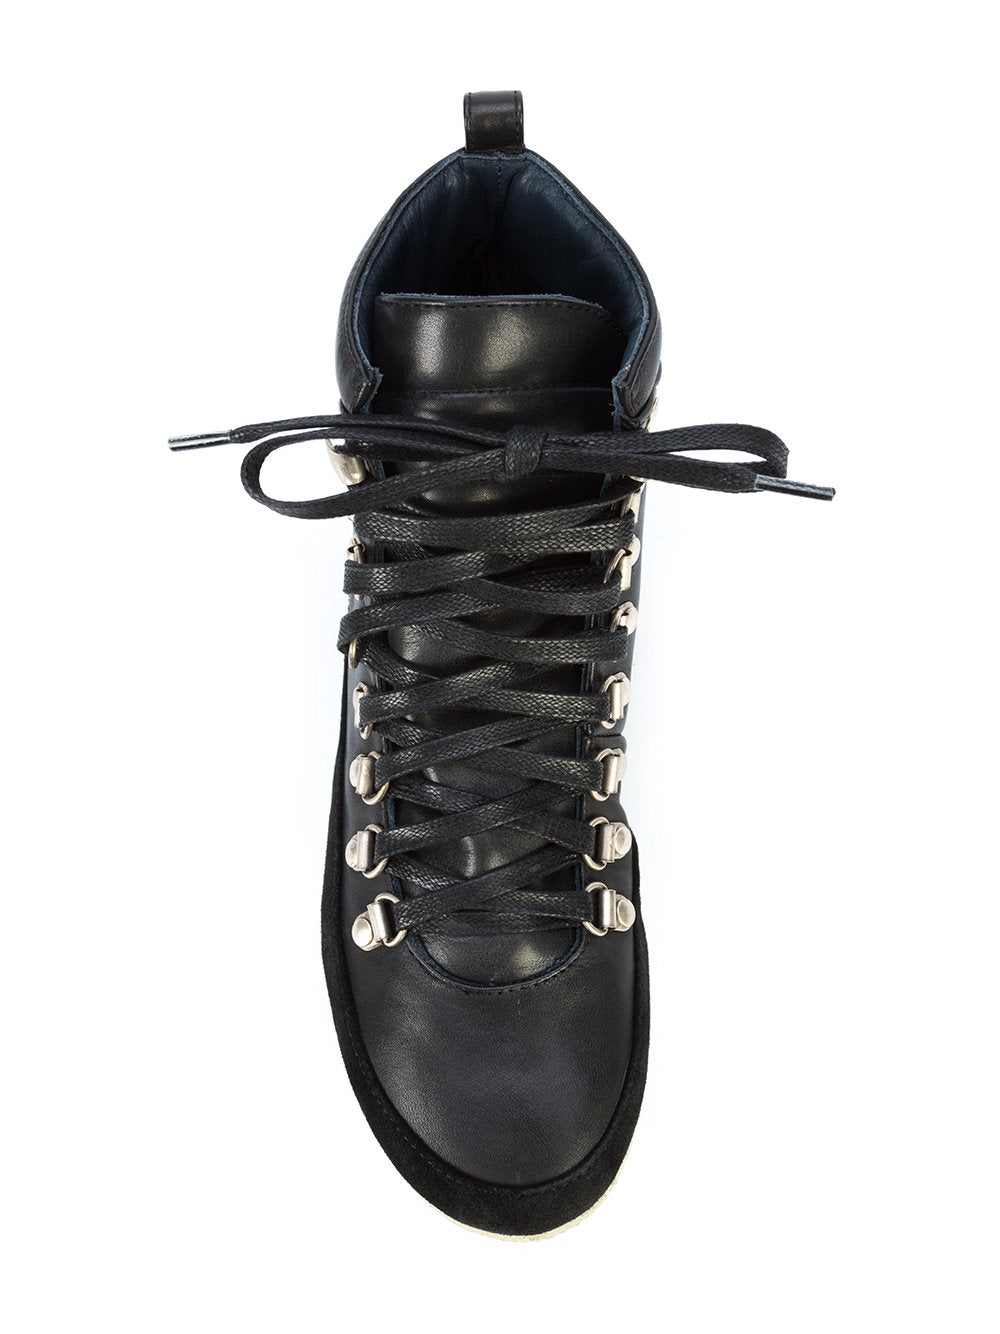 Leather Hiking Boot | VLSHB002 HIKING BOOT-BLK